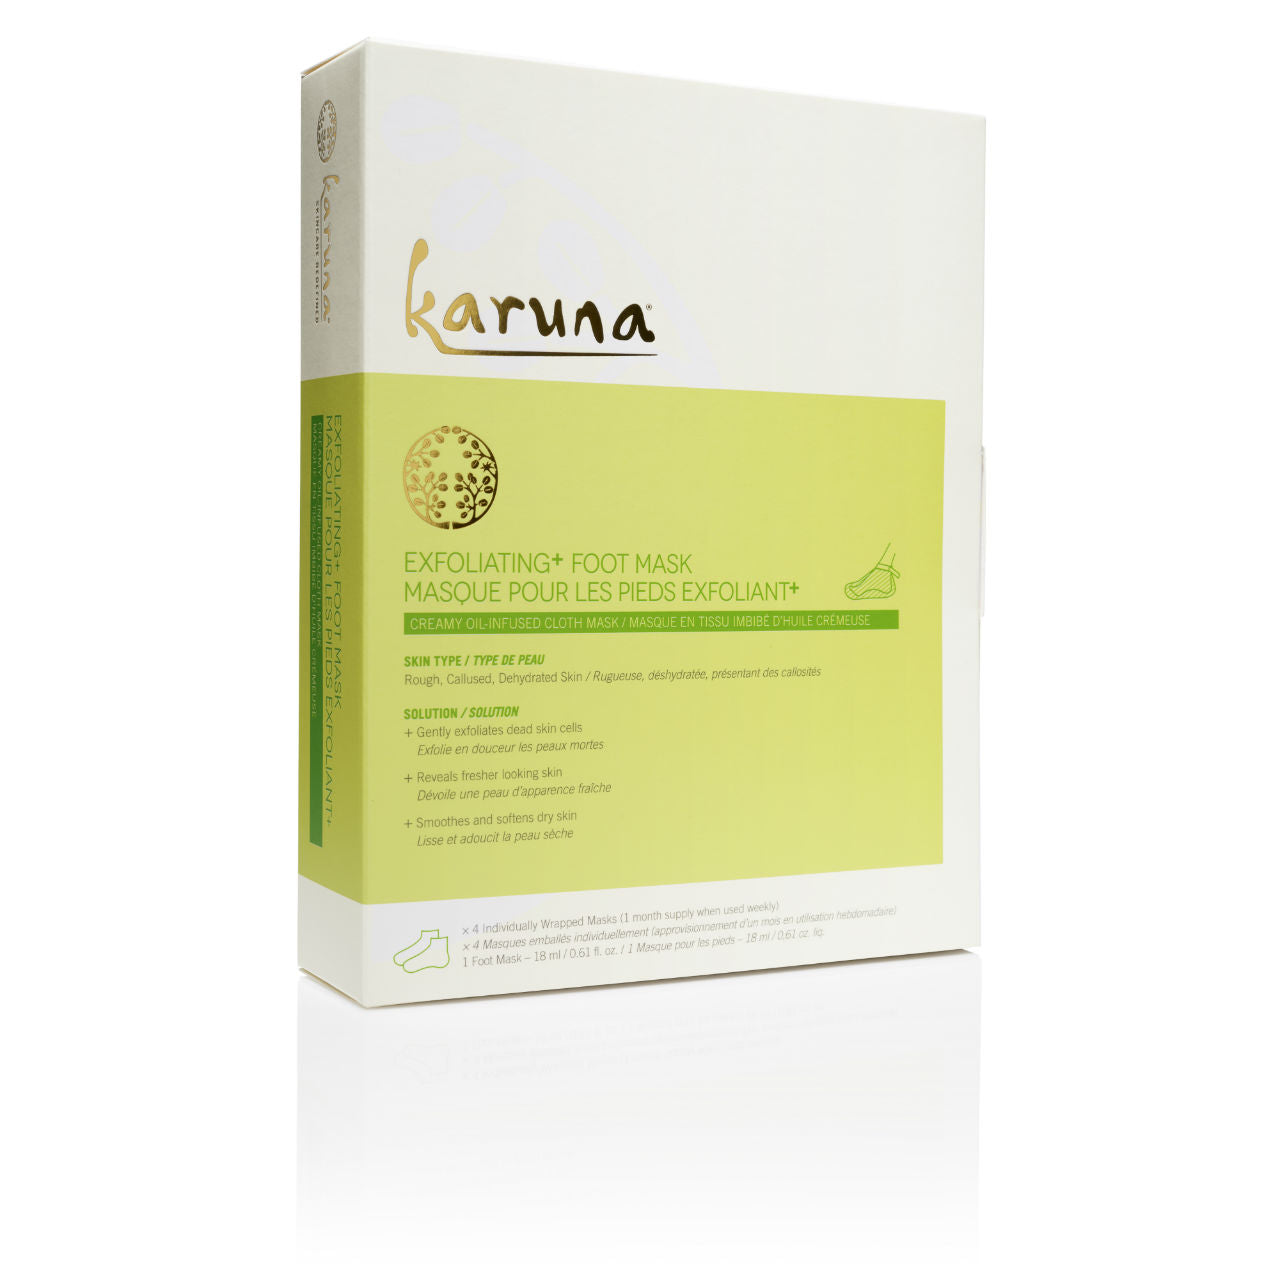 KARUNA Exfoliating+ Foot Mask Box